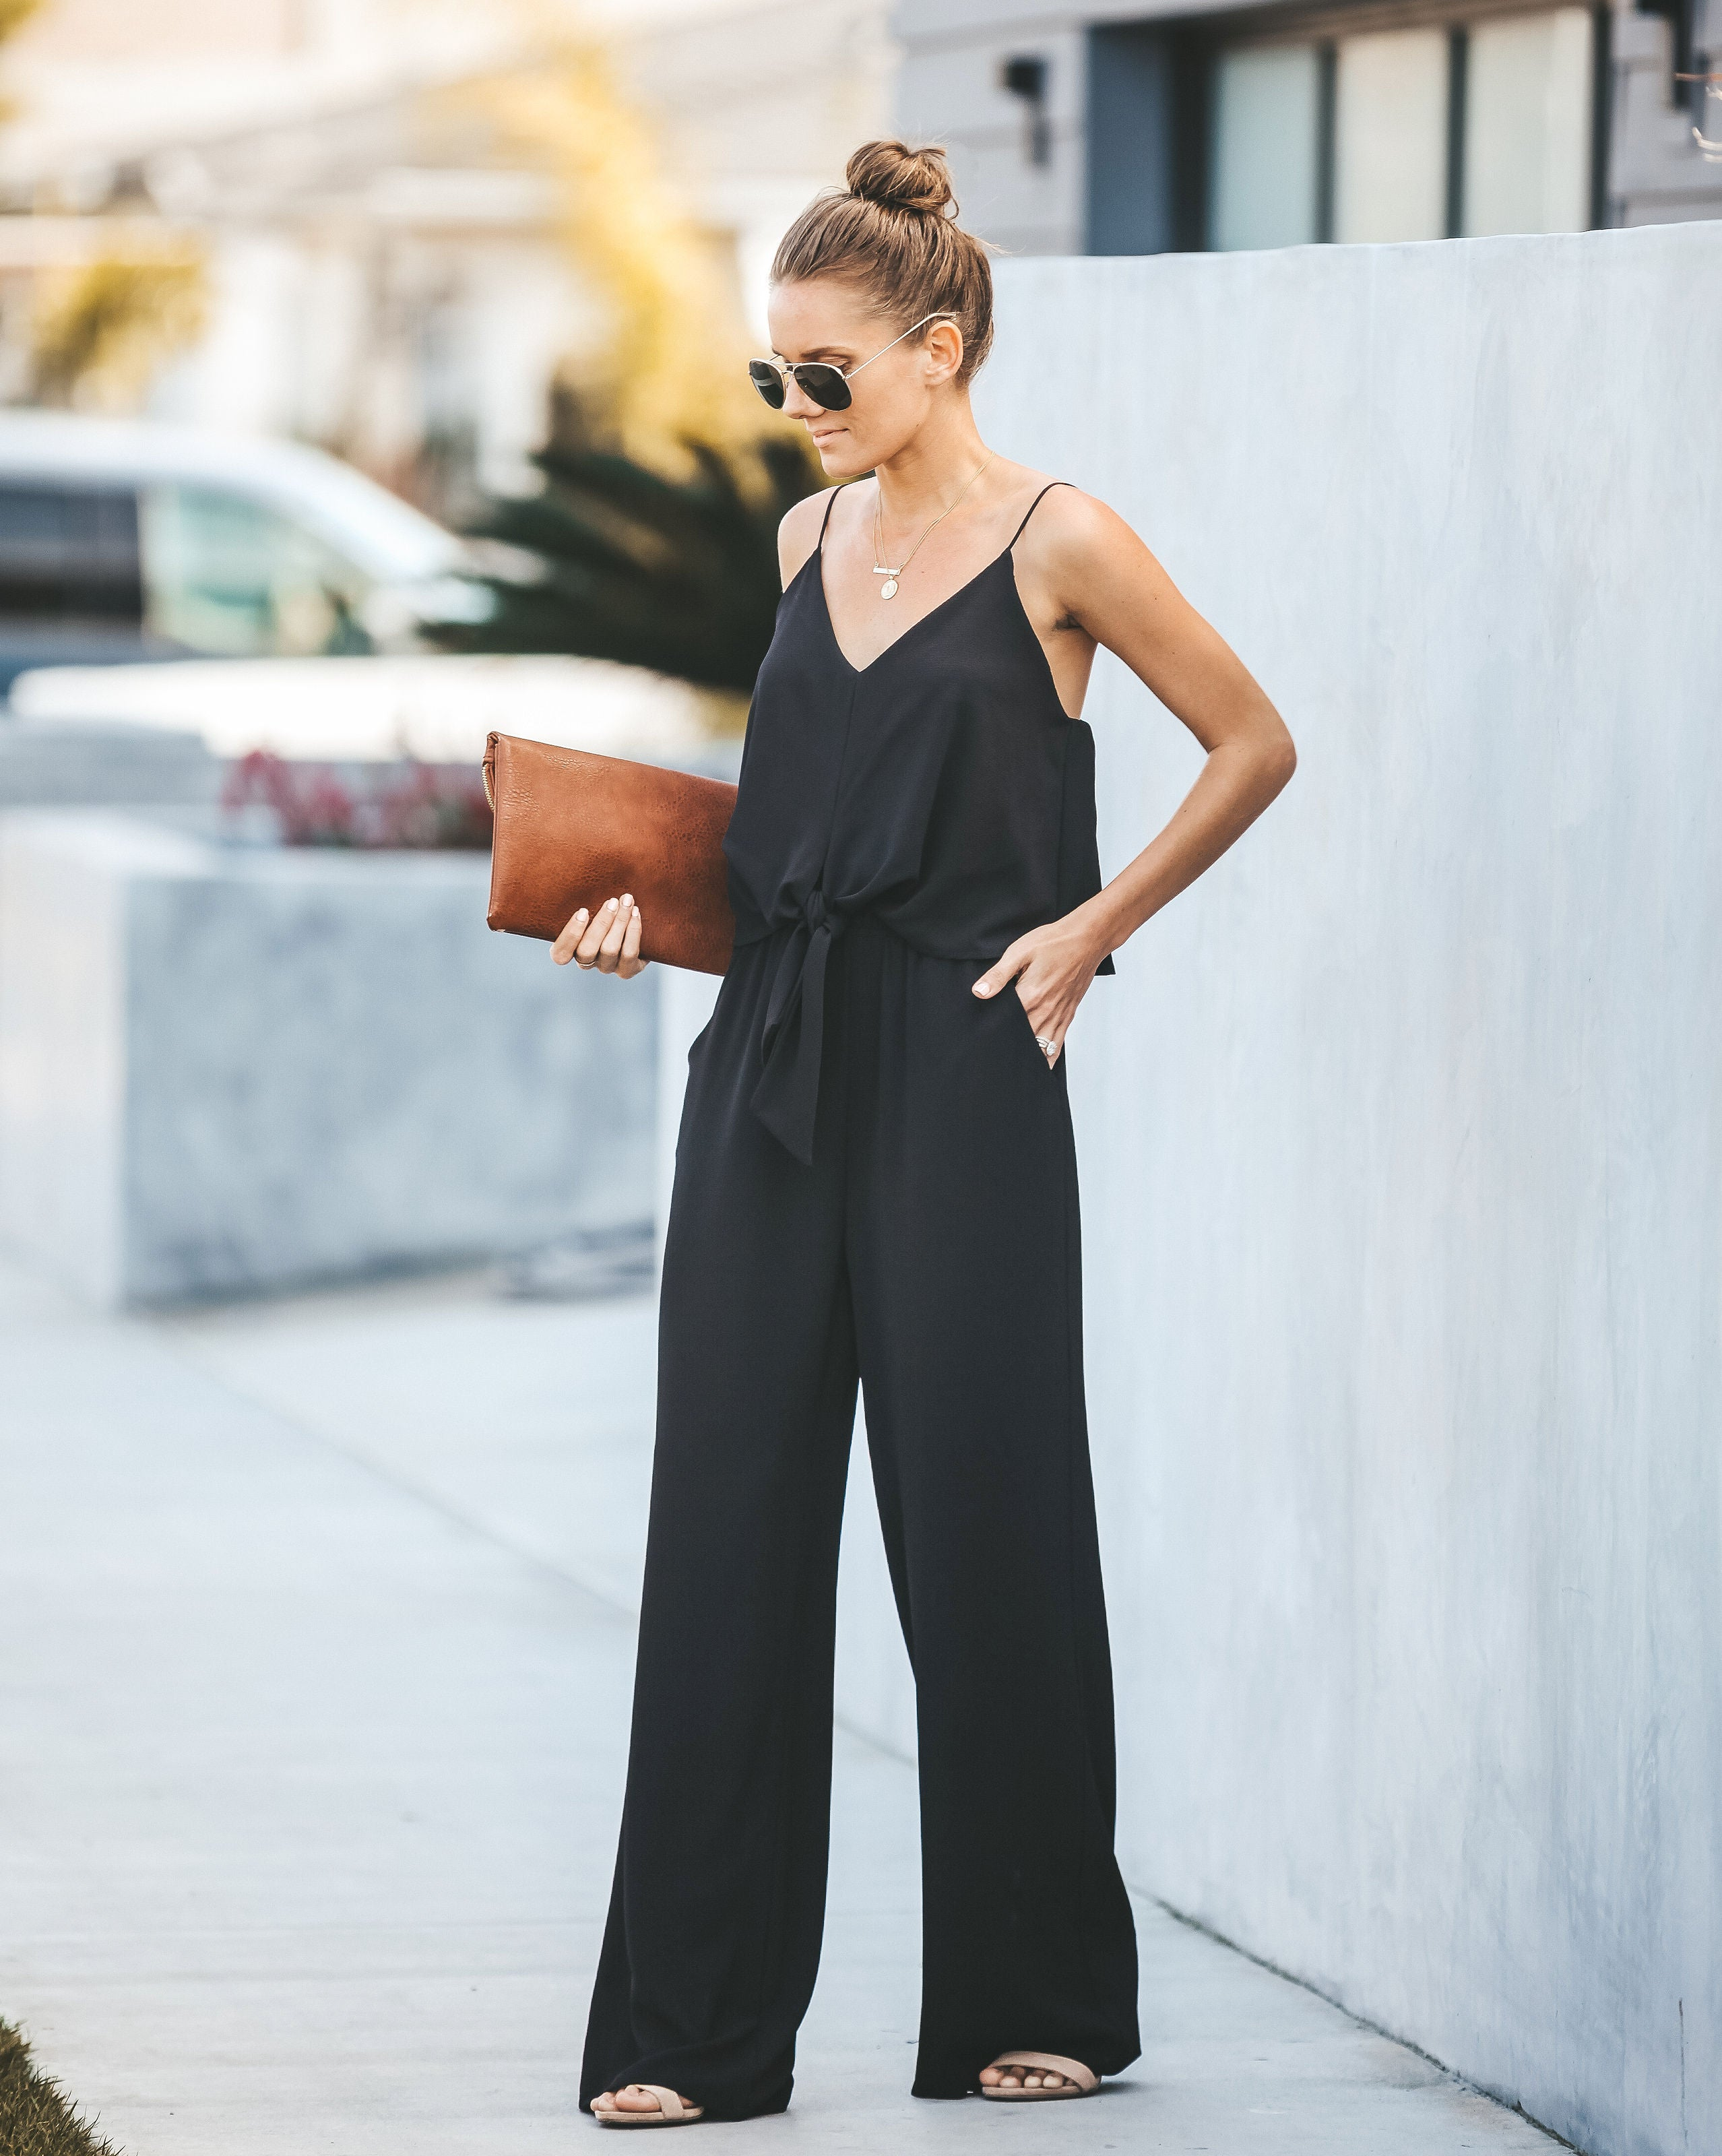 974655d449e5 Run To Me Pocketed Tie Jumpsuit - Black – VICI